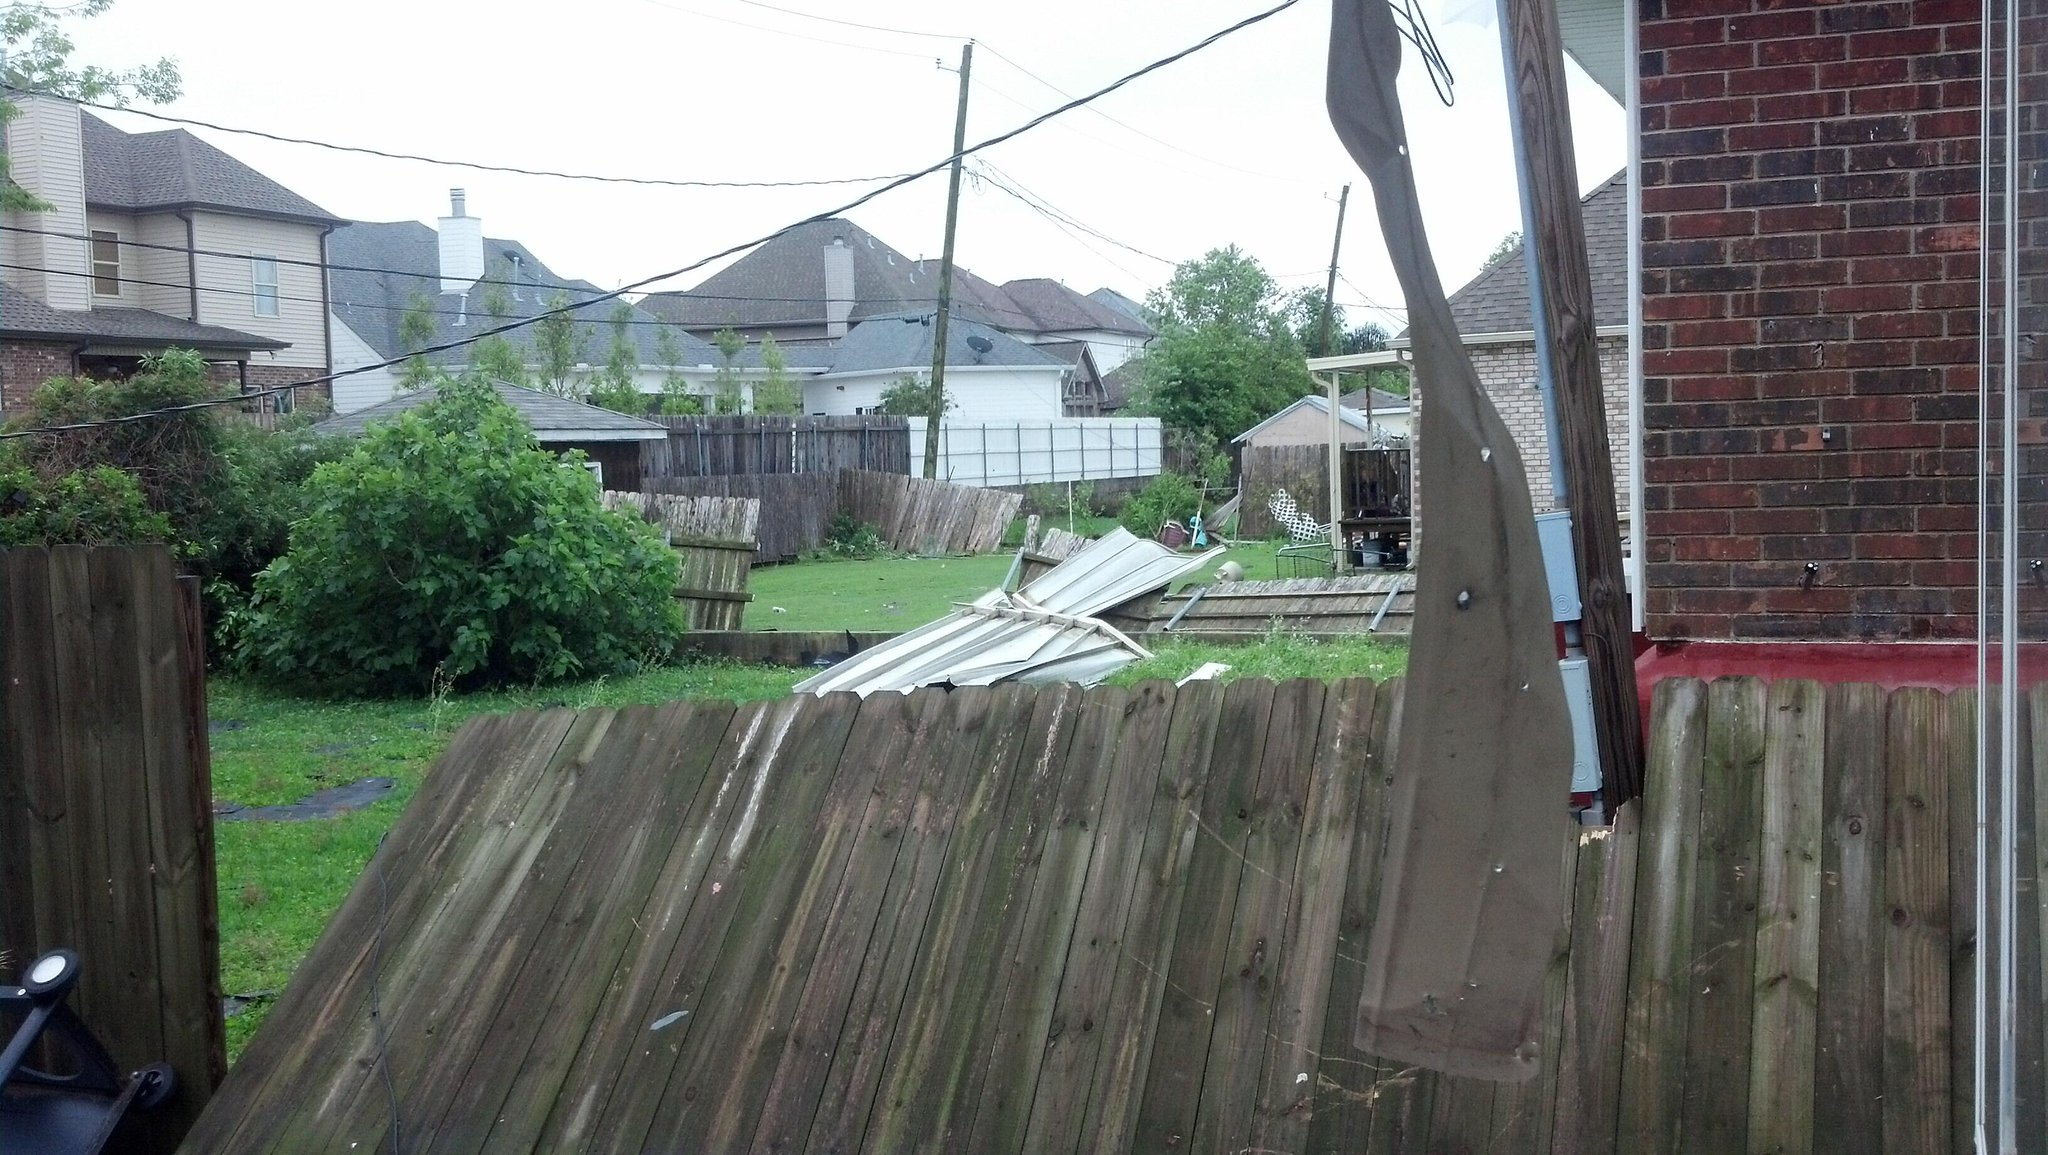 Twitter / MHernandezWWL: Roofs damaged, fences down, ...